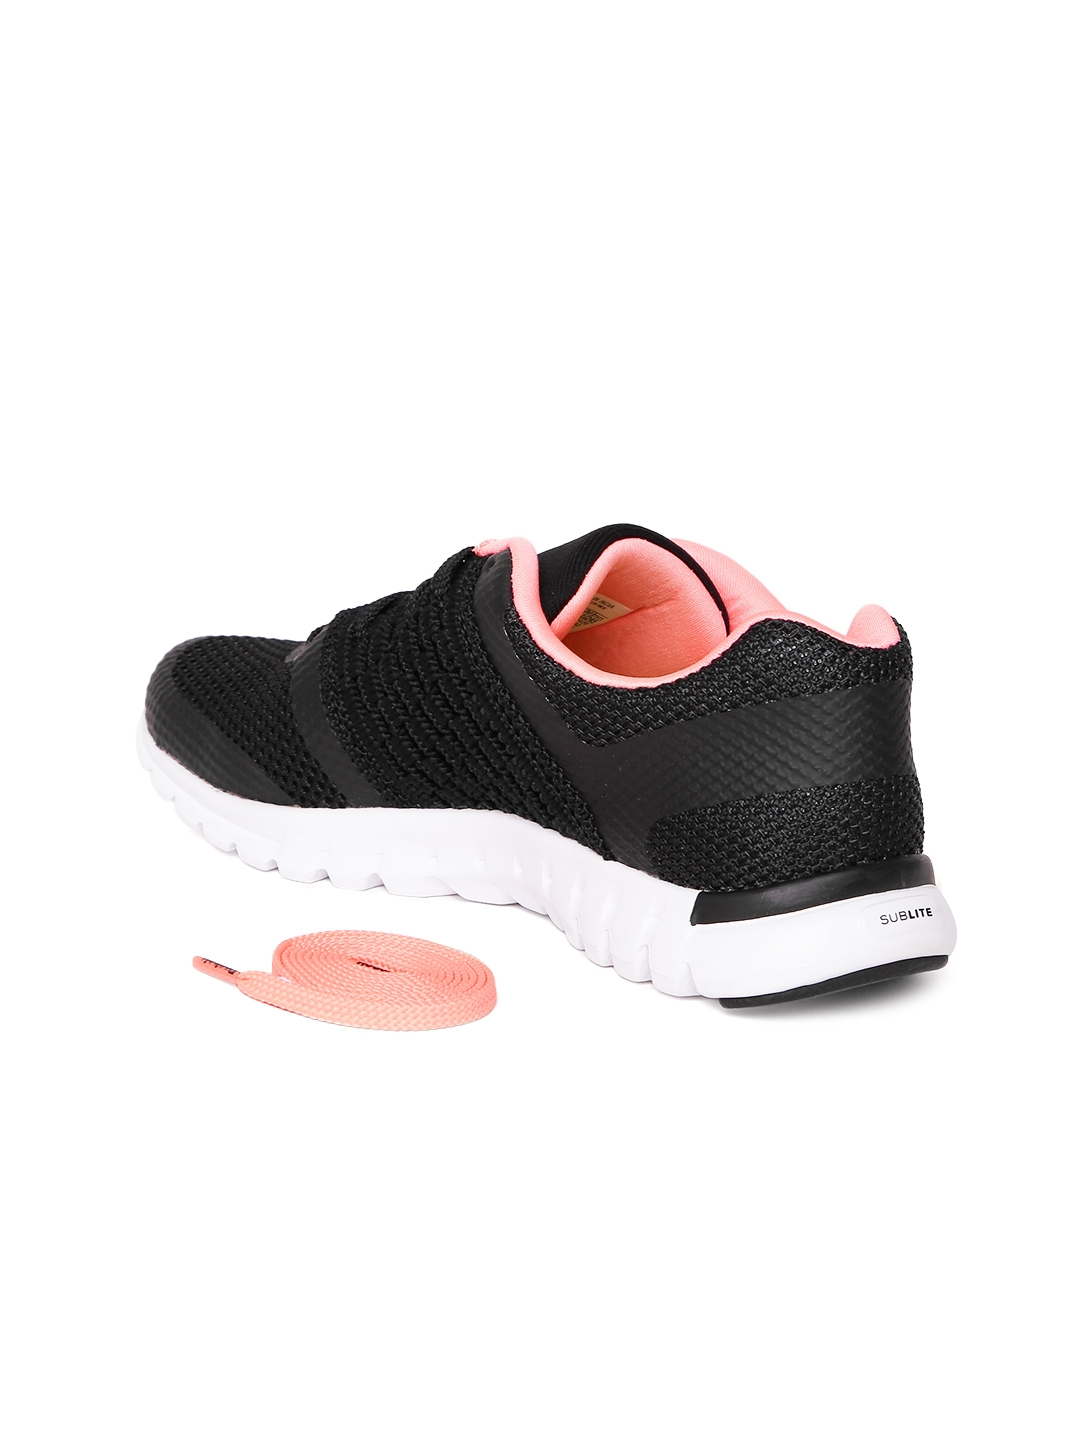 387ee35be60d Buy Reebok Women Black Sublite Transition Running Shoes - Sports ...